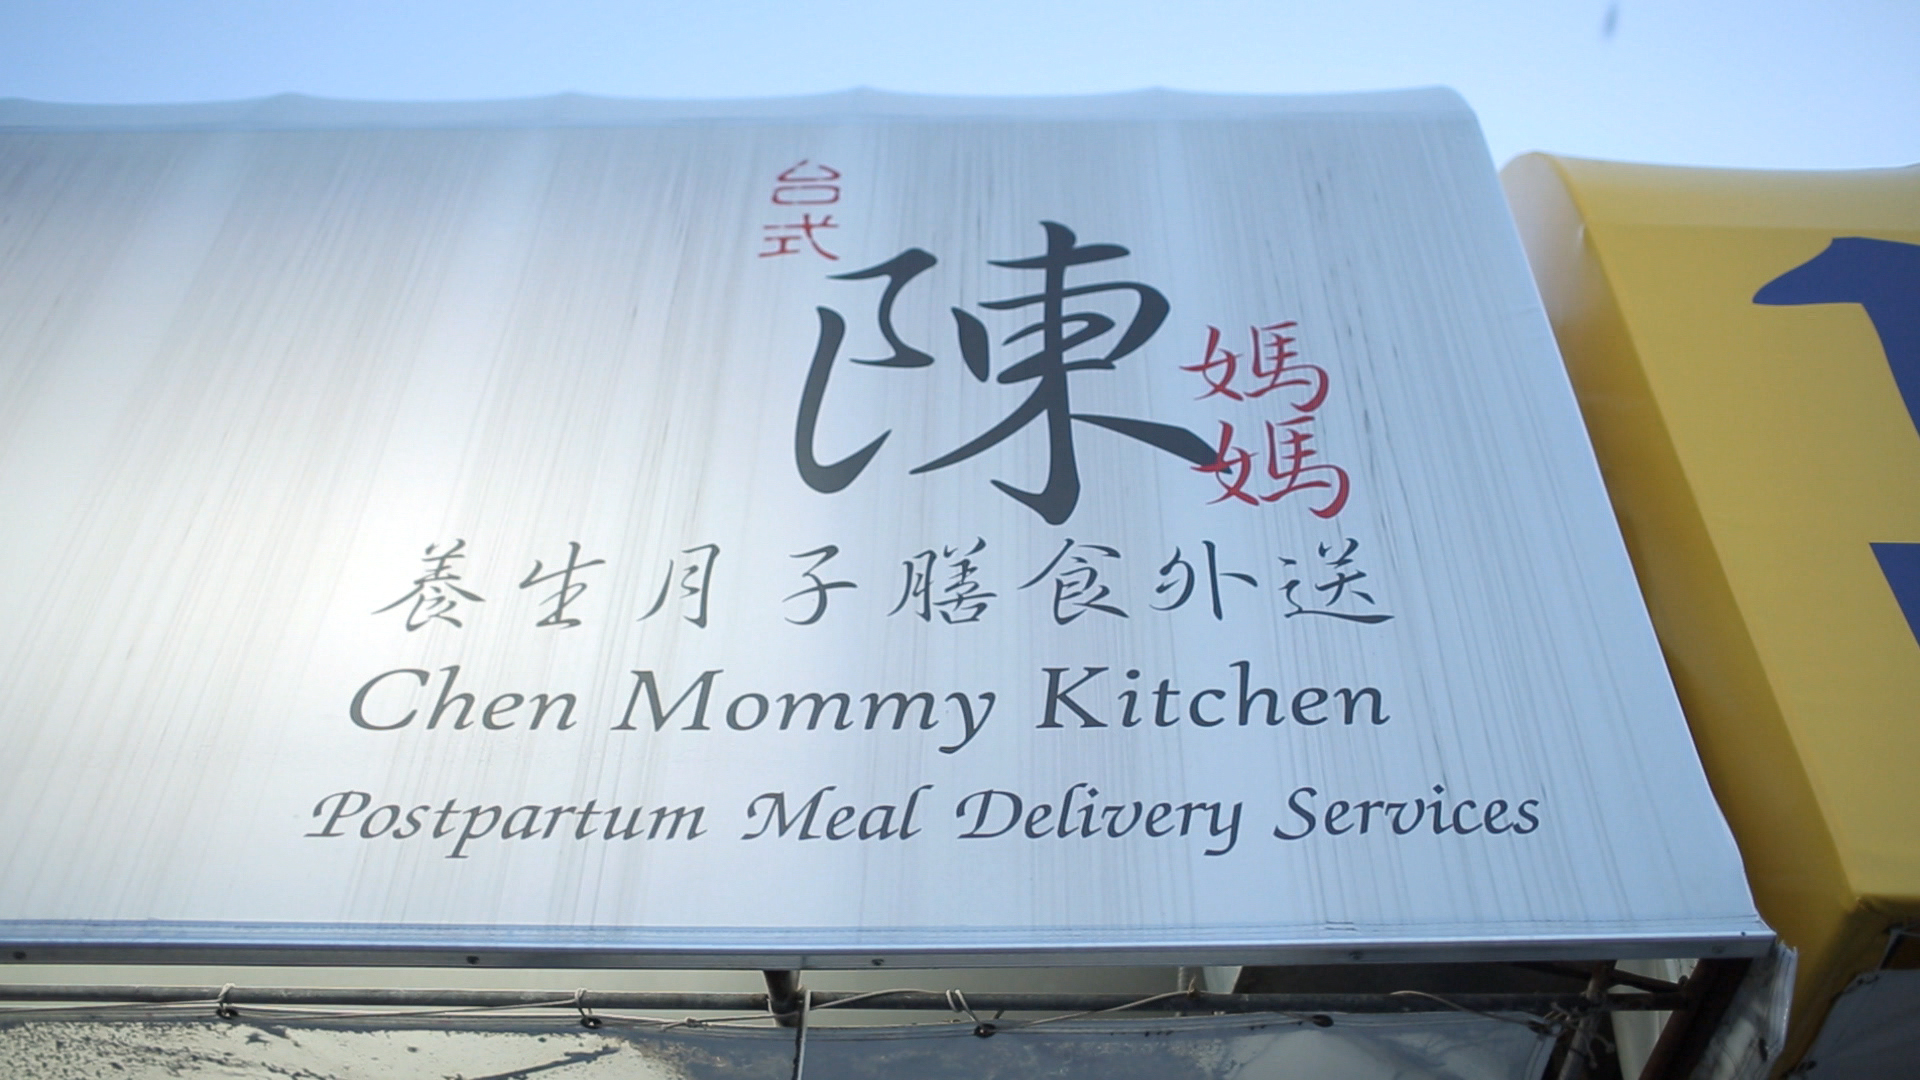 Chen Mommy Kitchen Helps Mothers Carry Old Tradition NBC News